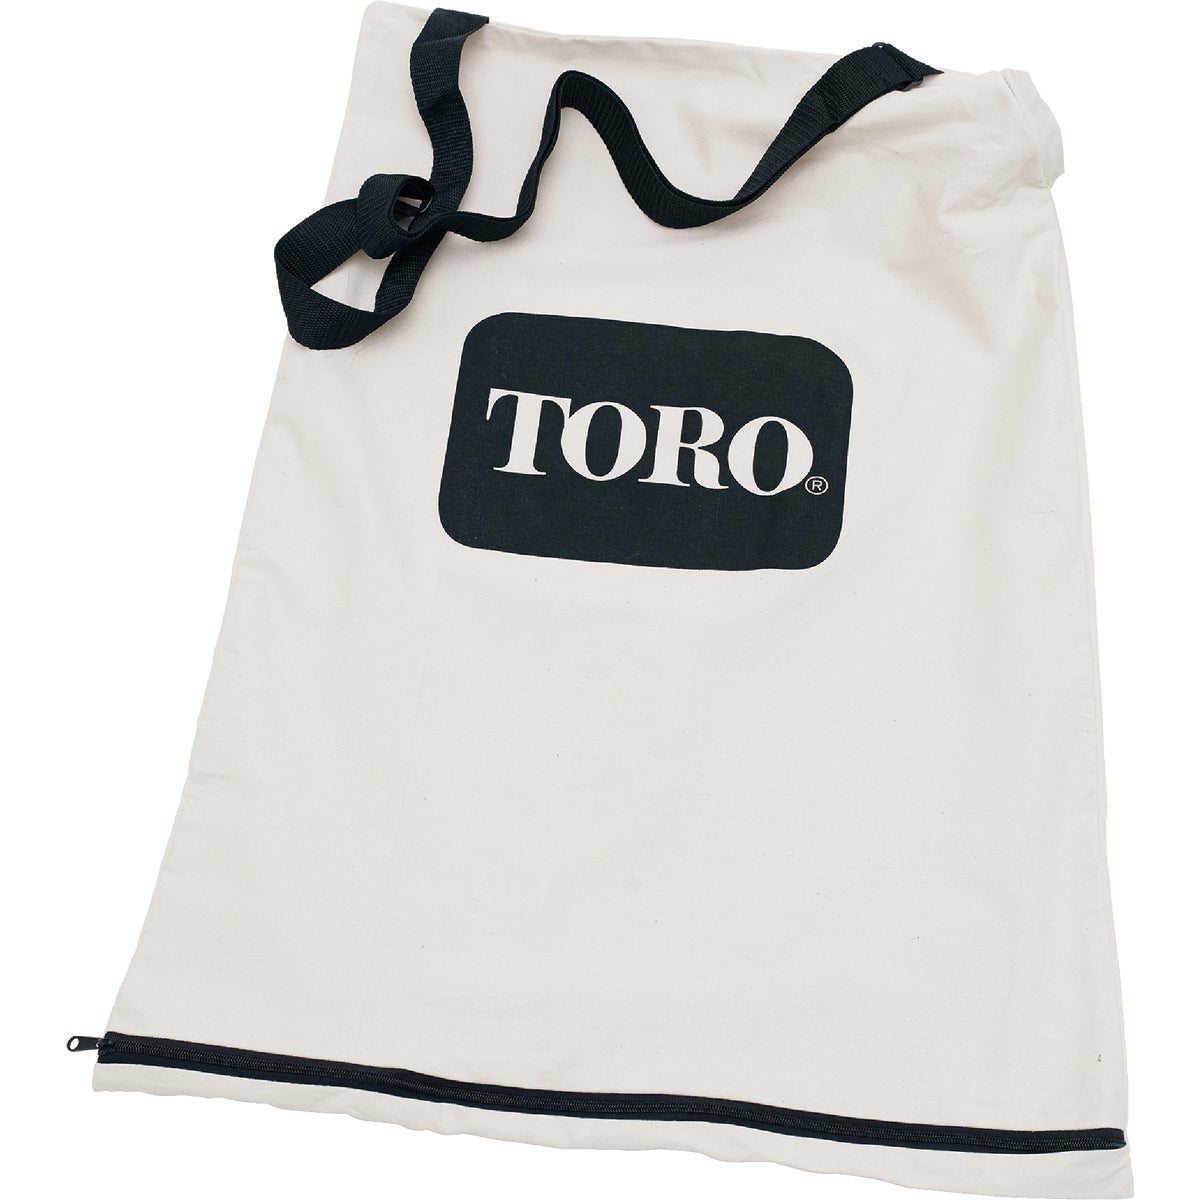 BLWR/VAC REPLACEMENT BAG - 51601 by Toro Outdoor